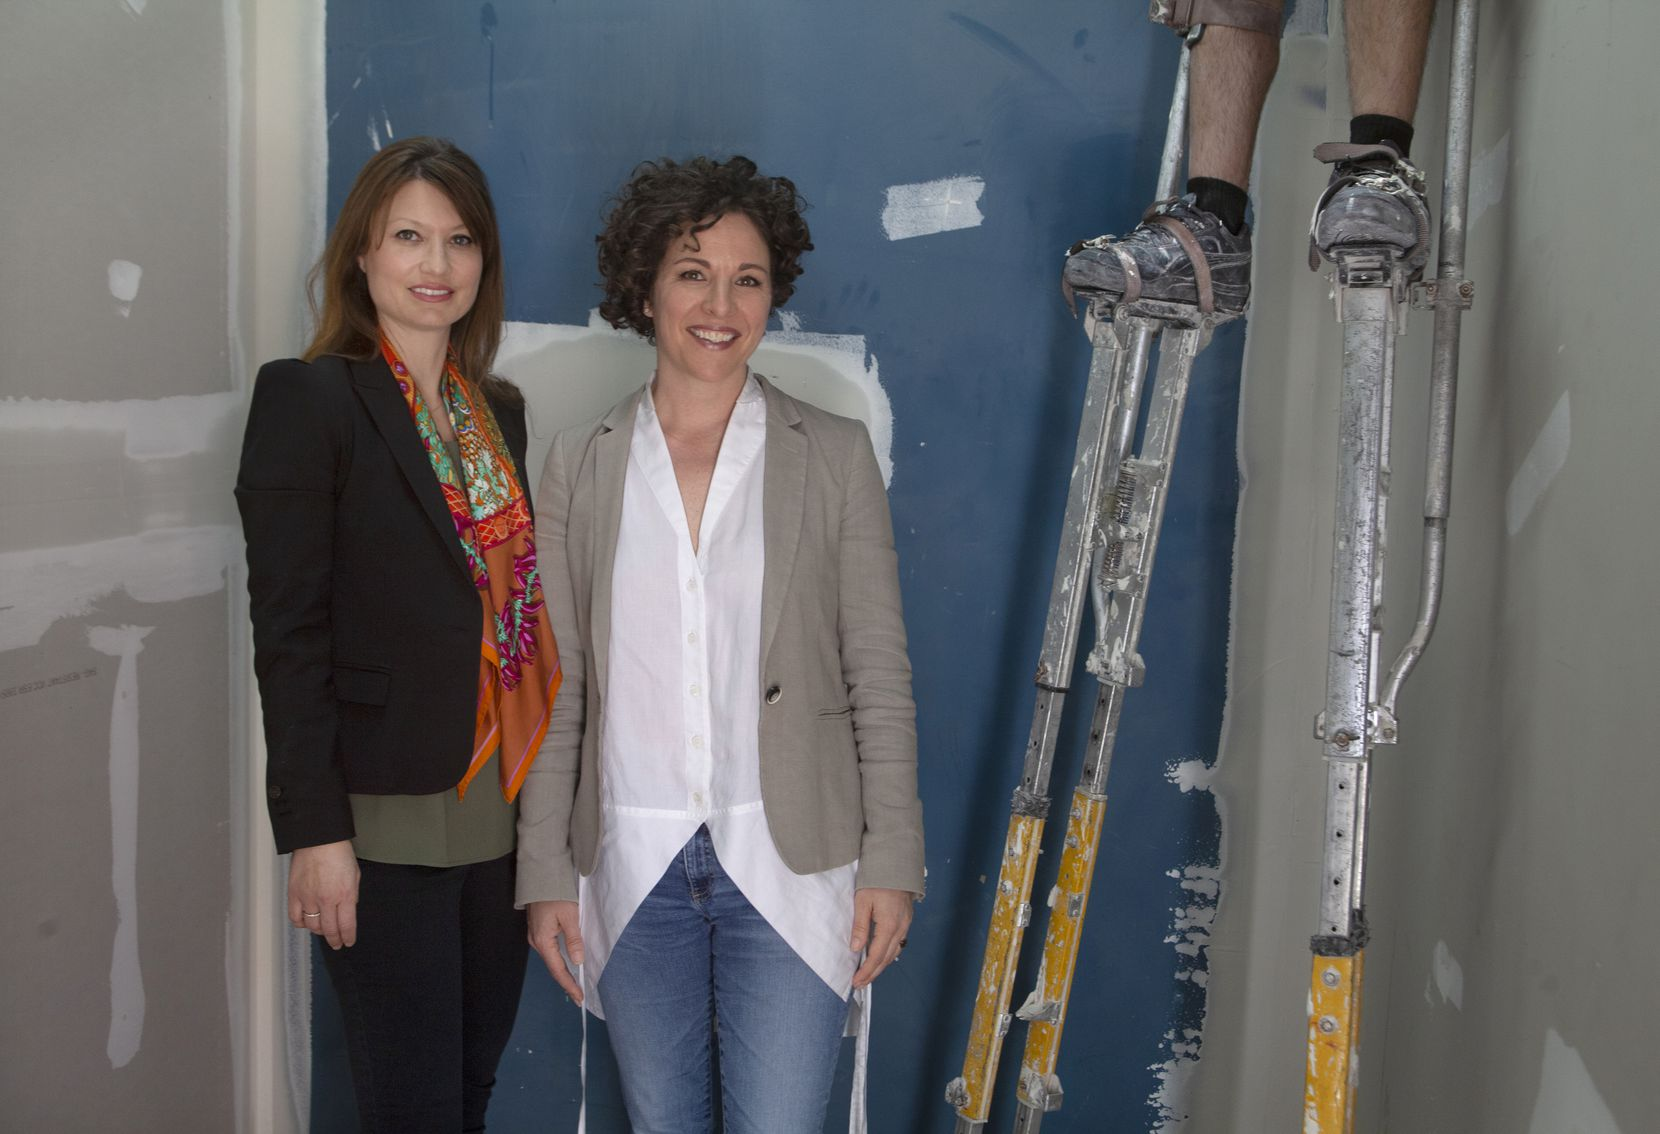 From left, Nell Potasznik Langford (director of Cluley Projects) and Erin Cluley (owner and director of Erin Cluley Gallery) photographed during construction of Cluley Projects in West Dallas which will open on April 17. (Nan Coulter)